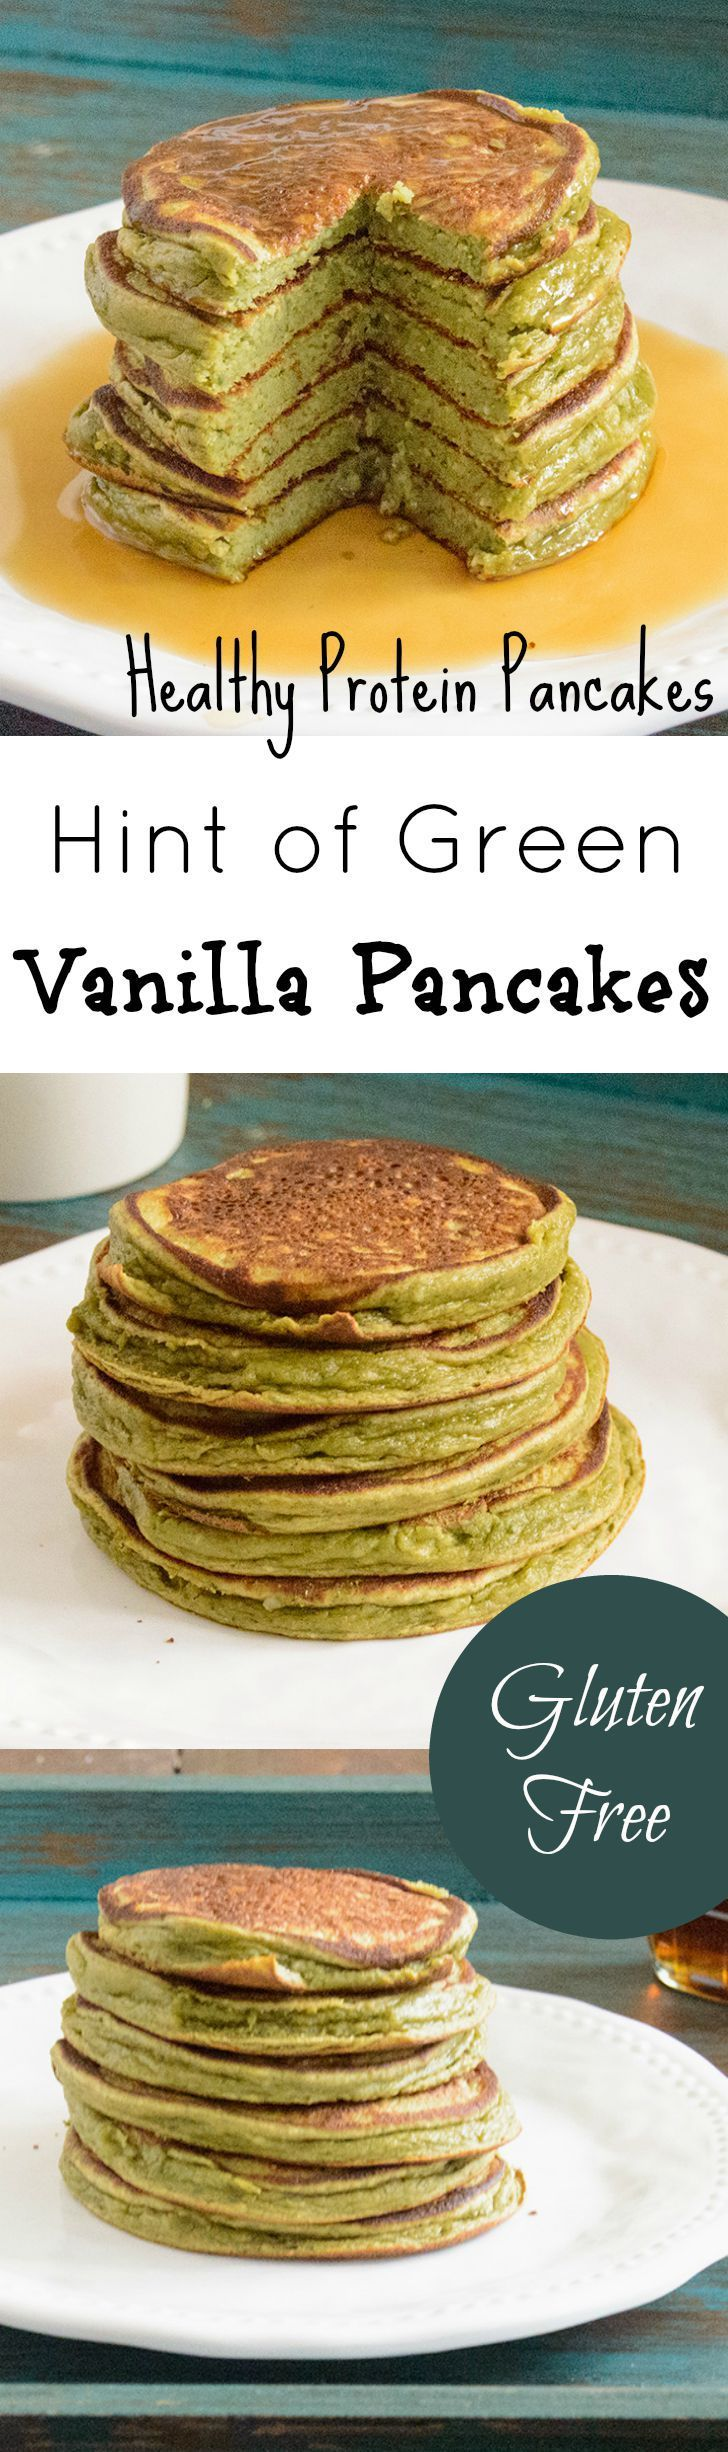 Super simple protein pancakes. These pancakes are gluten free, packed with protein and super fluffy and easy to make! Made with Vega One vanilla protein powder, these healthy pancakes are perfect for breakfast or breakfast for dinner!